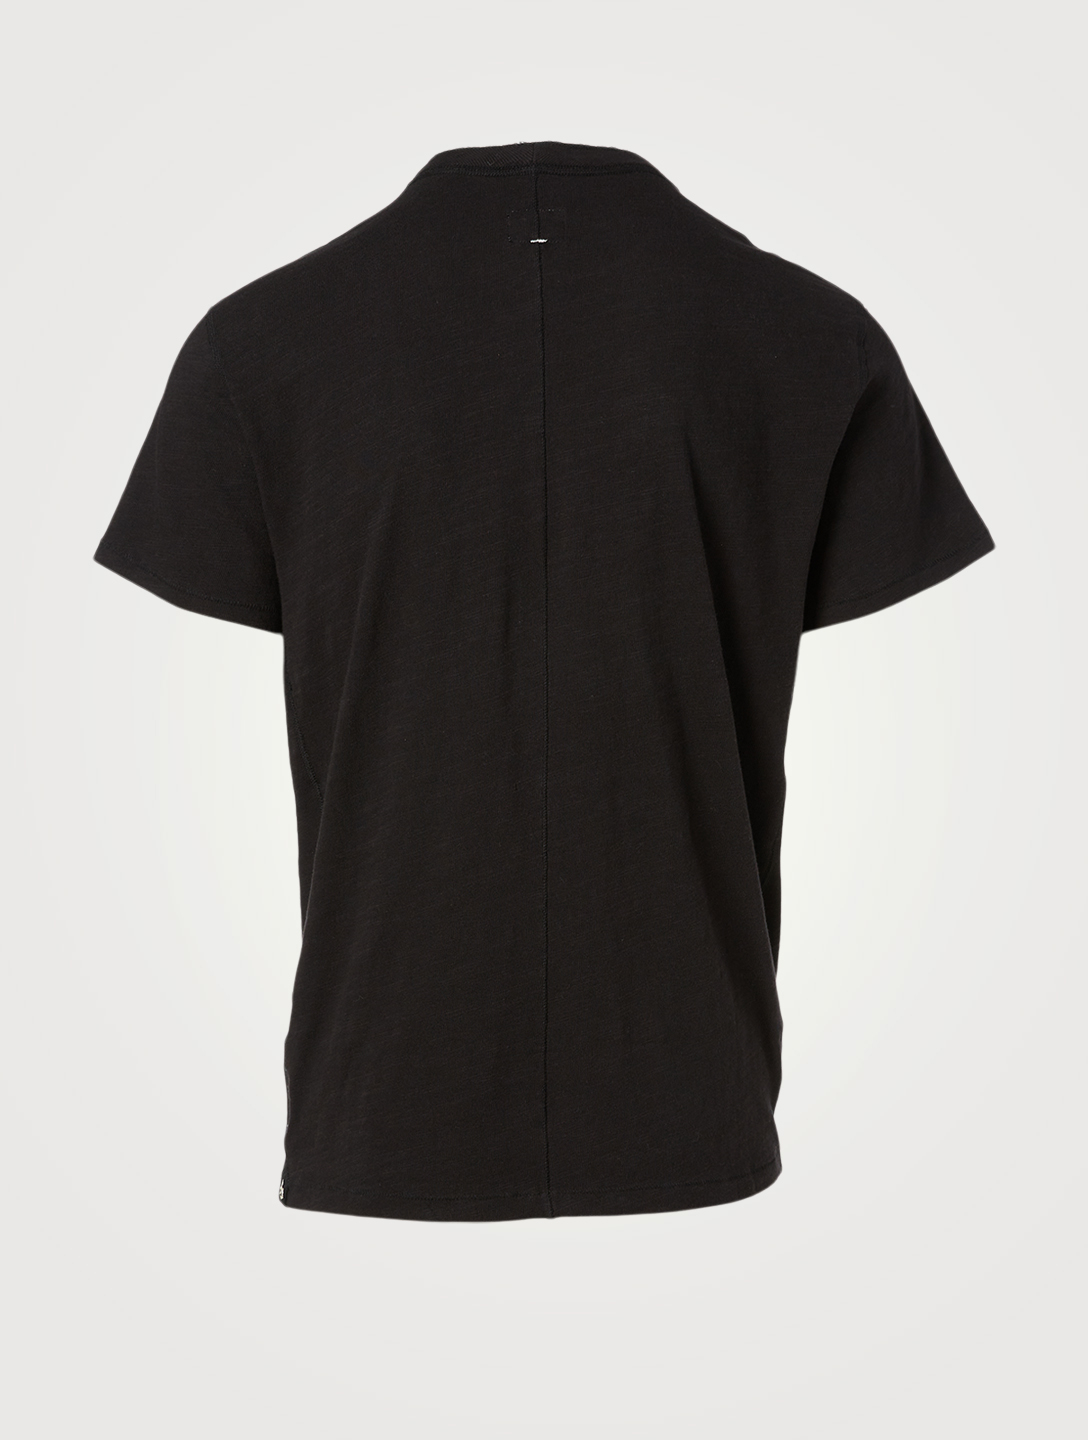 RAG & BONE Classic Cotton Henley T-Shirt Men's Black